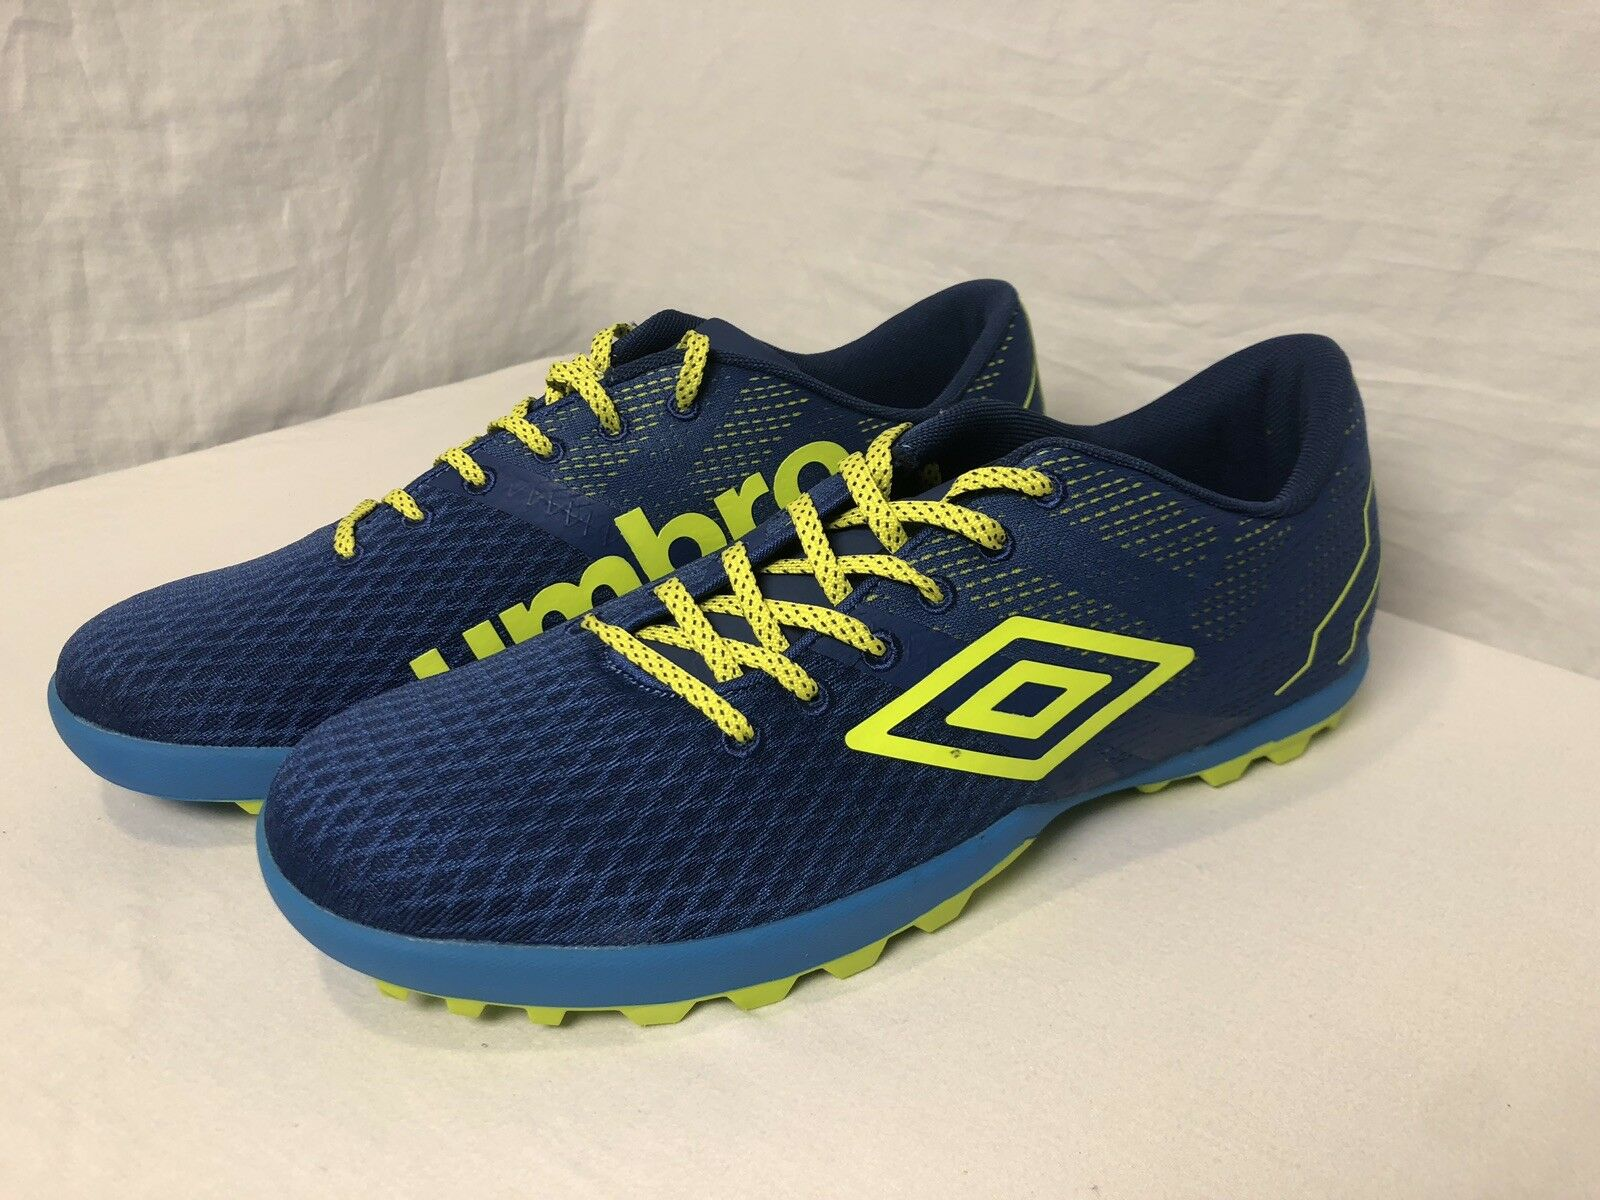 separation shoes da764 11008 UMBRO Flash 2.0 - Athletic Turf shoes - Size US 11 - Men s bluee Yellow